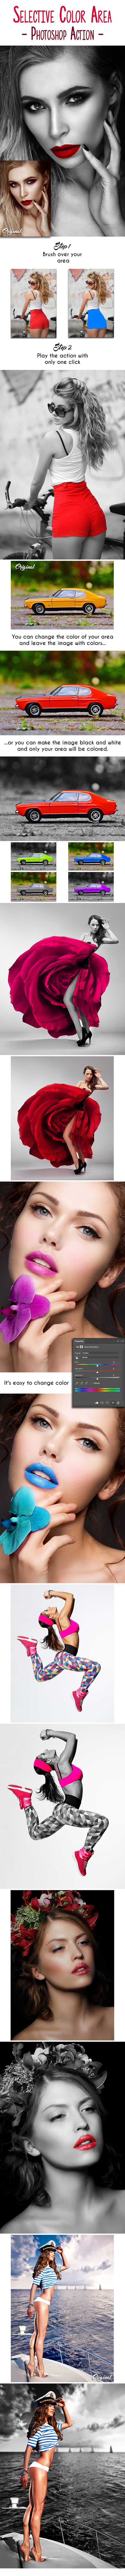 Selective Color Area Photoshop Action - Photo Effects Actions